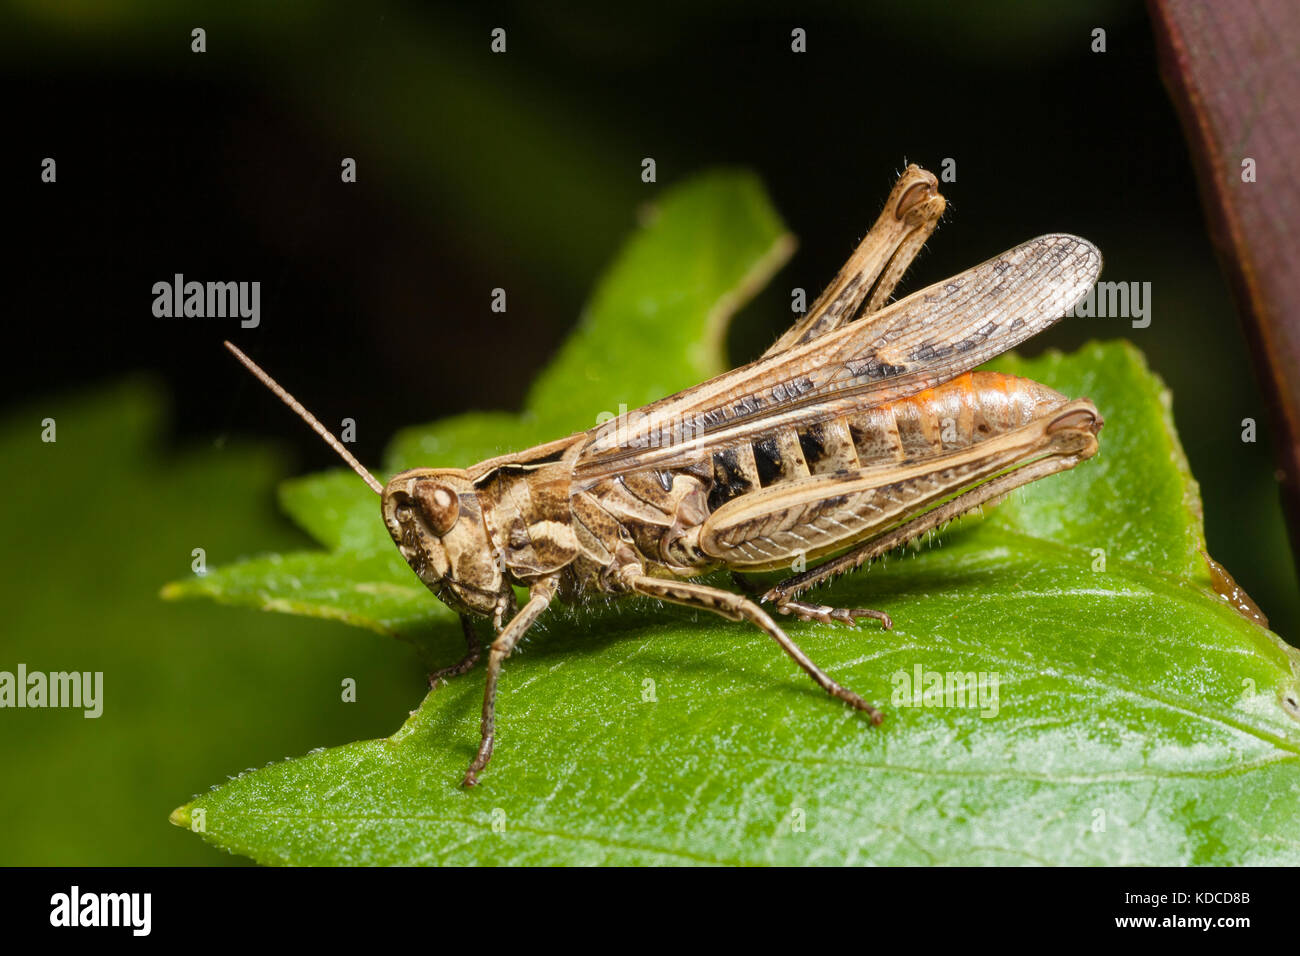 adult-common-field-grasshopper-chorthippus-brunneus-a-frequent-uk-KDCD8B.jpg